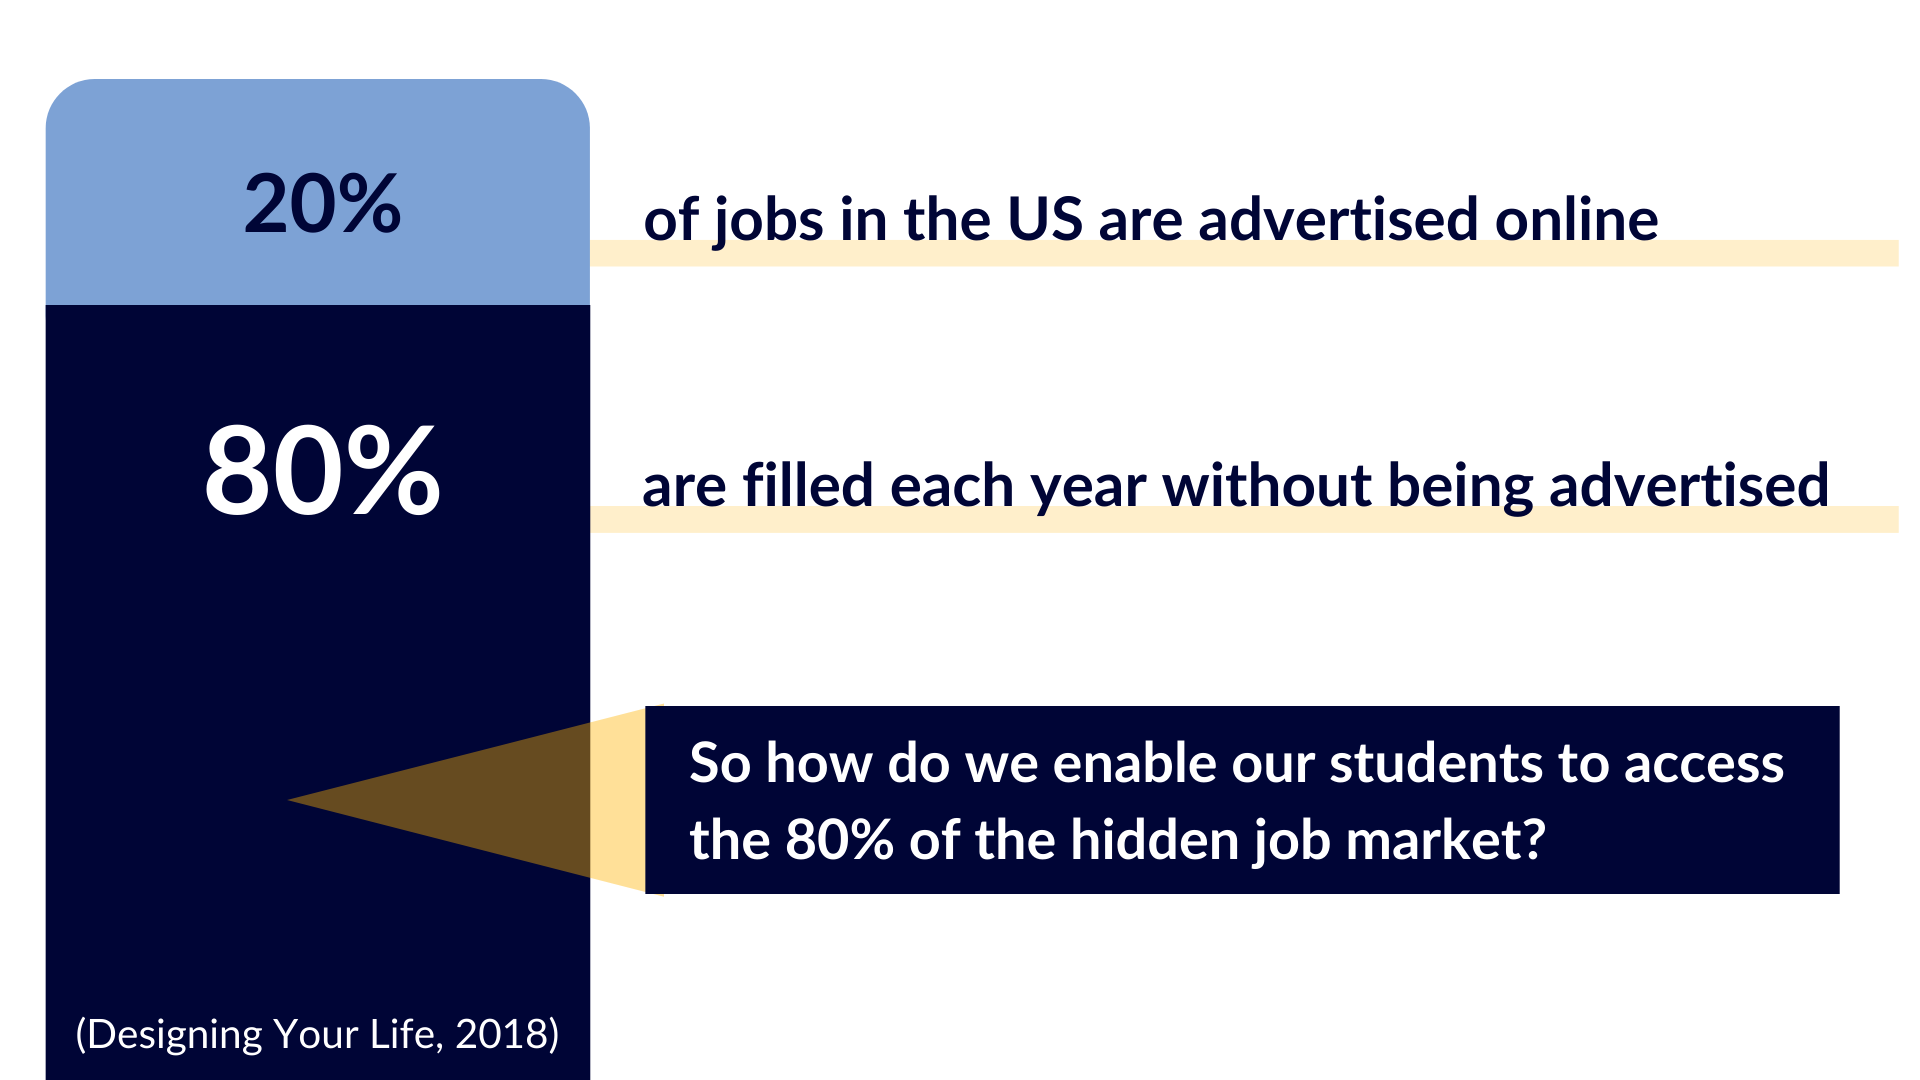 20% of jobs are advertised online. 80% are filled each year without being advertised.